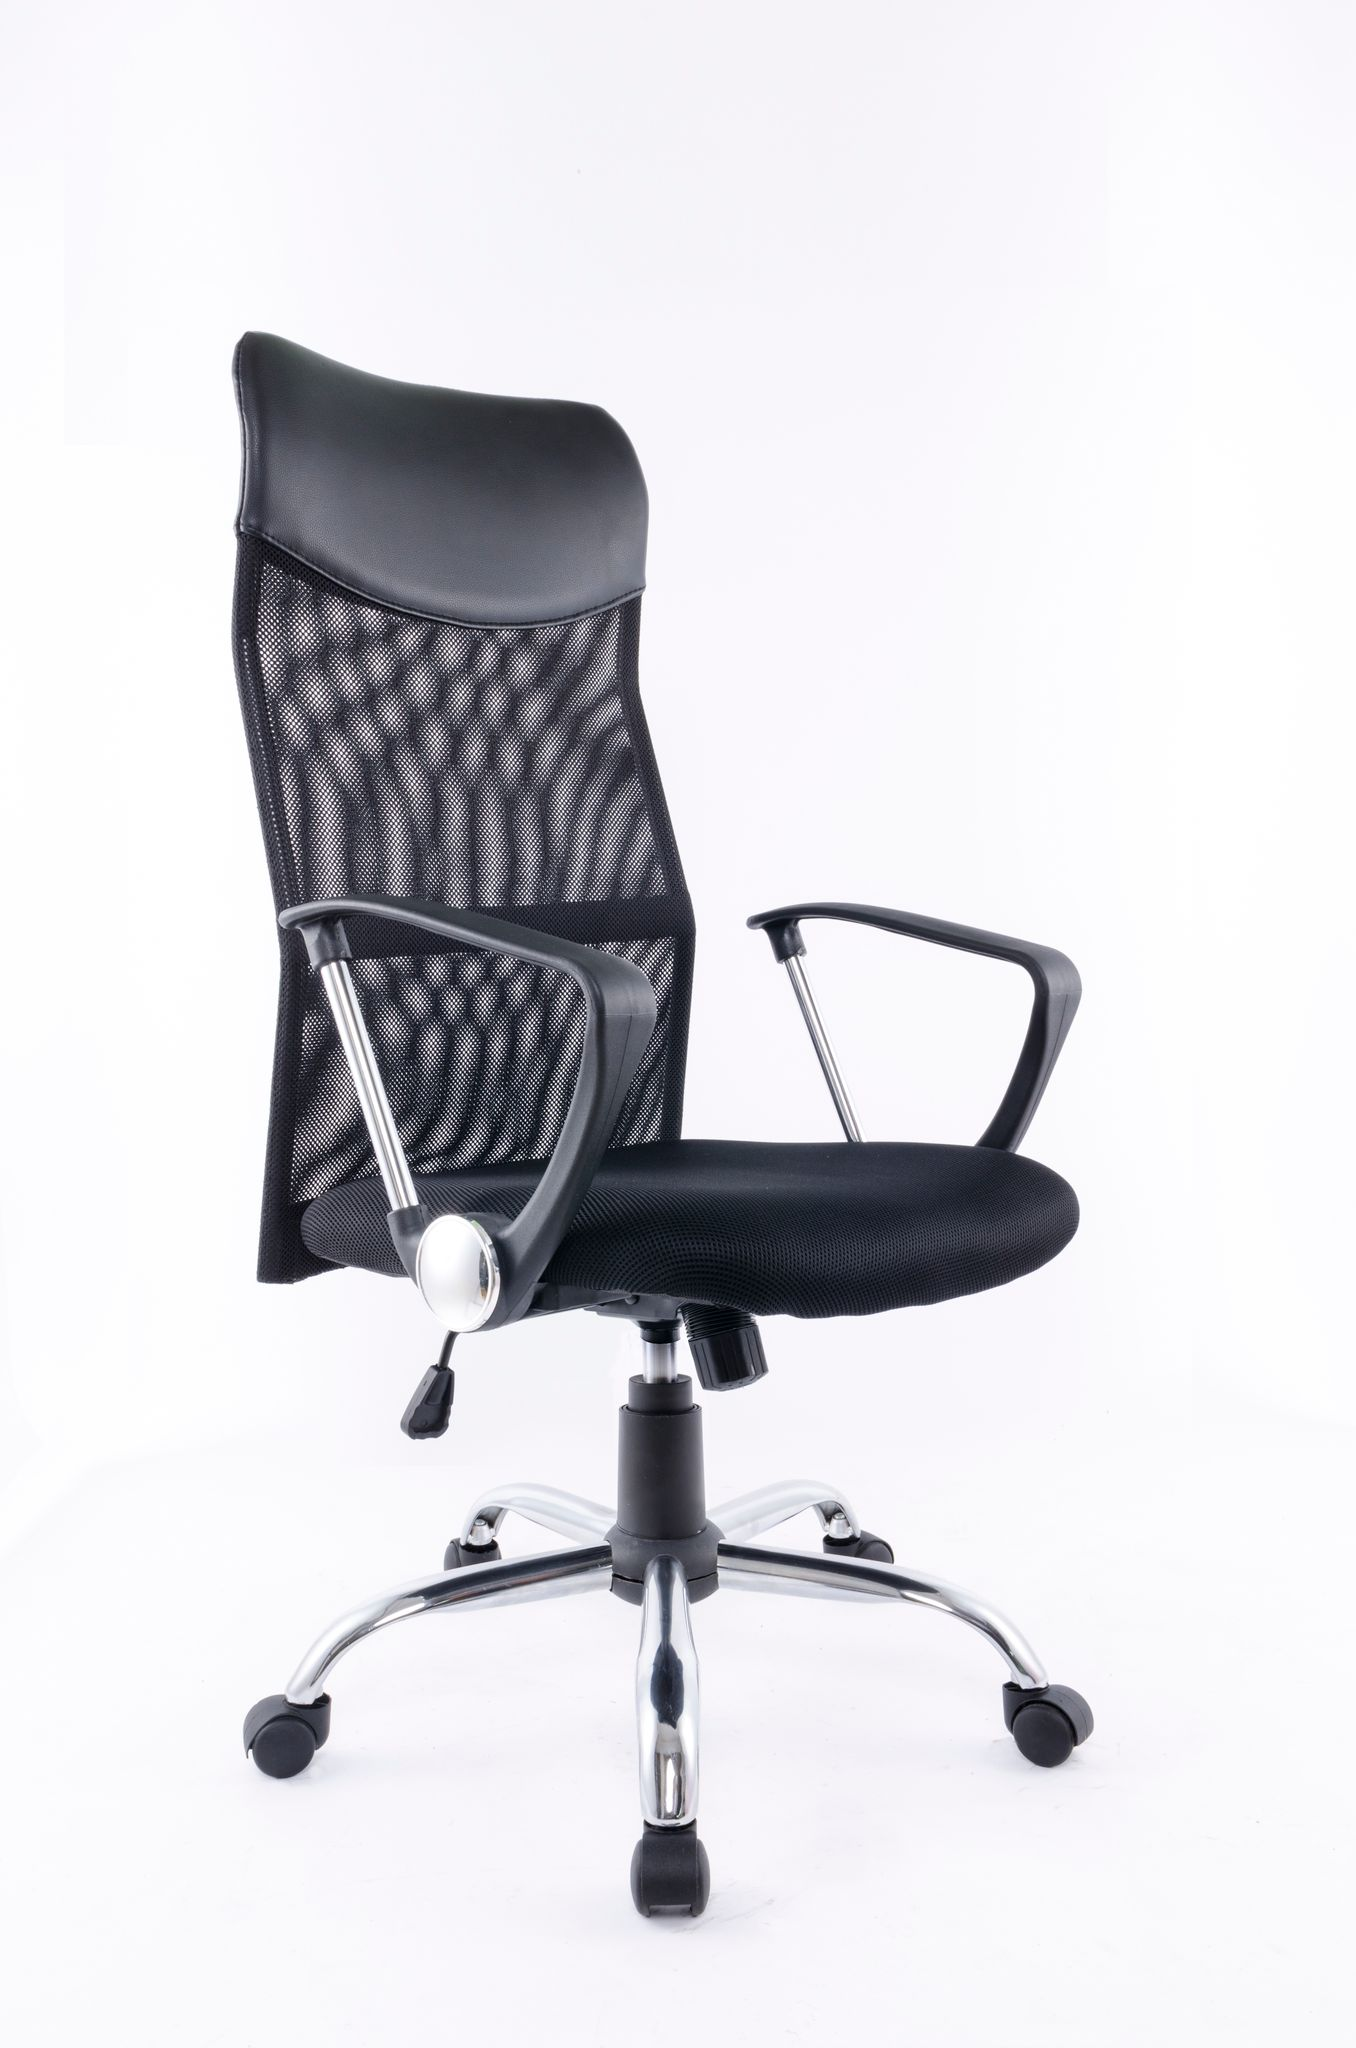 ADJ. OFFICE CHAIR W/TILT MECHANISM